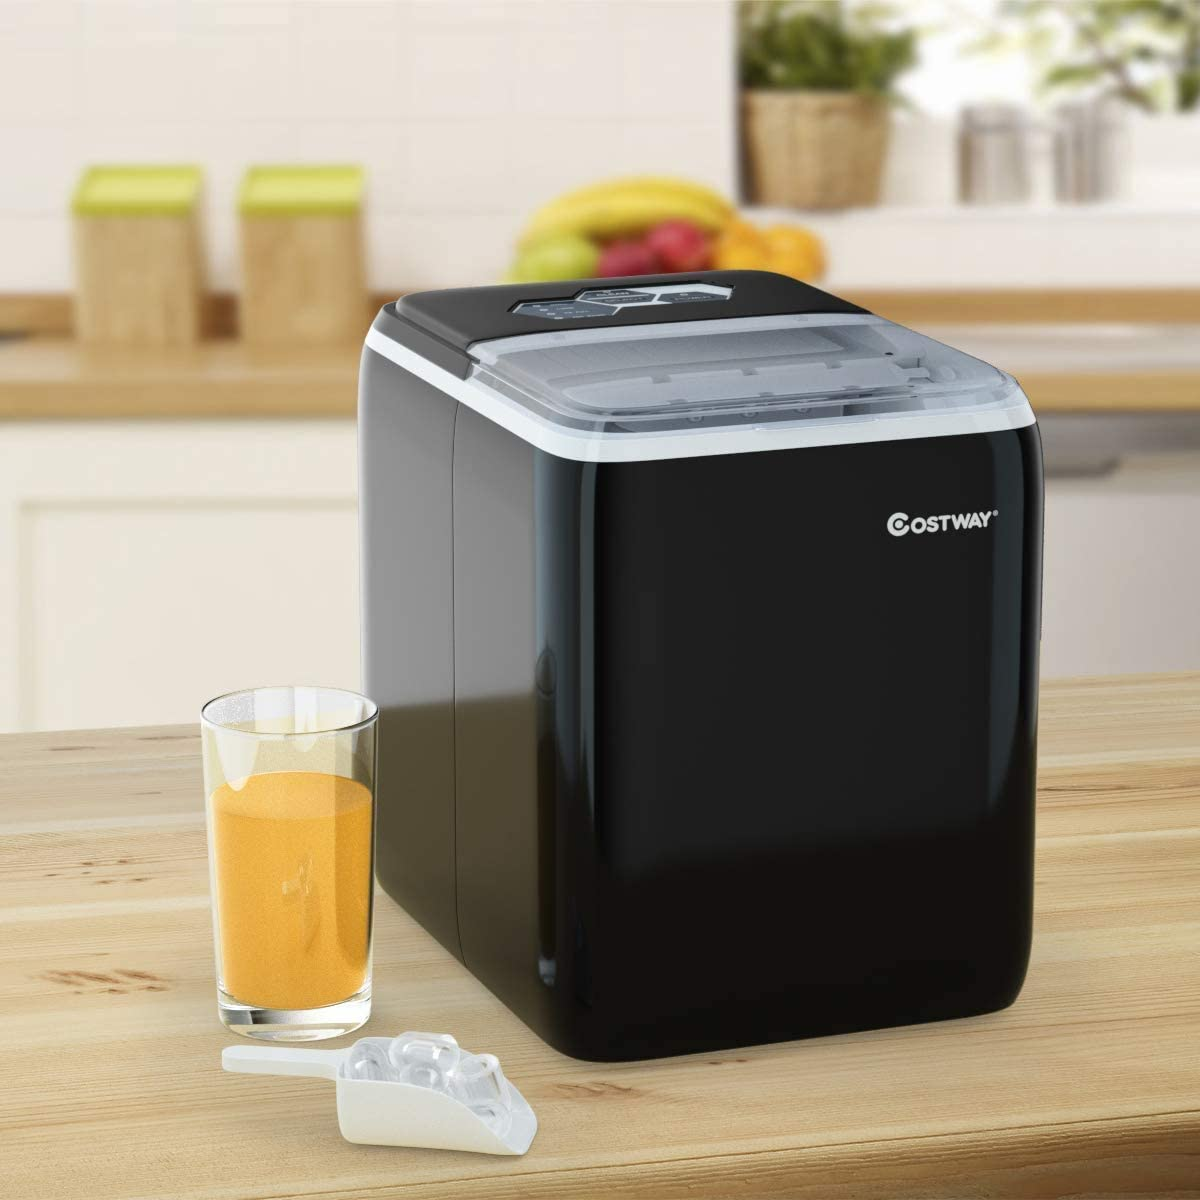 COSTWAY Ice Maker Countertop with Self-clean Function